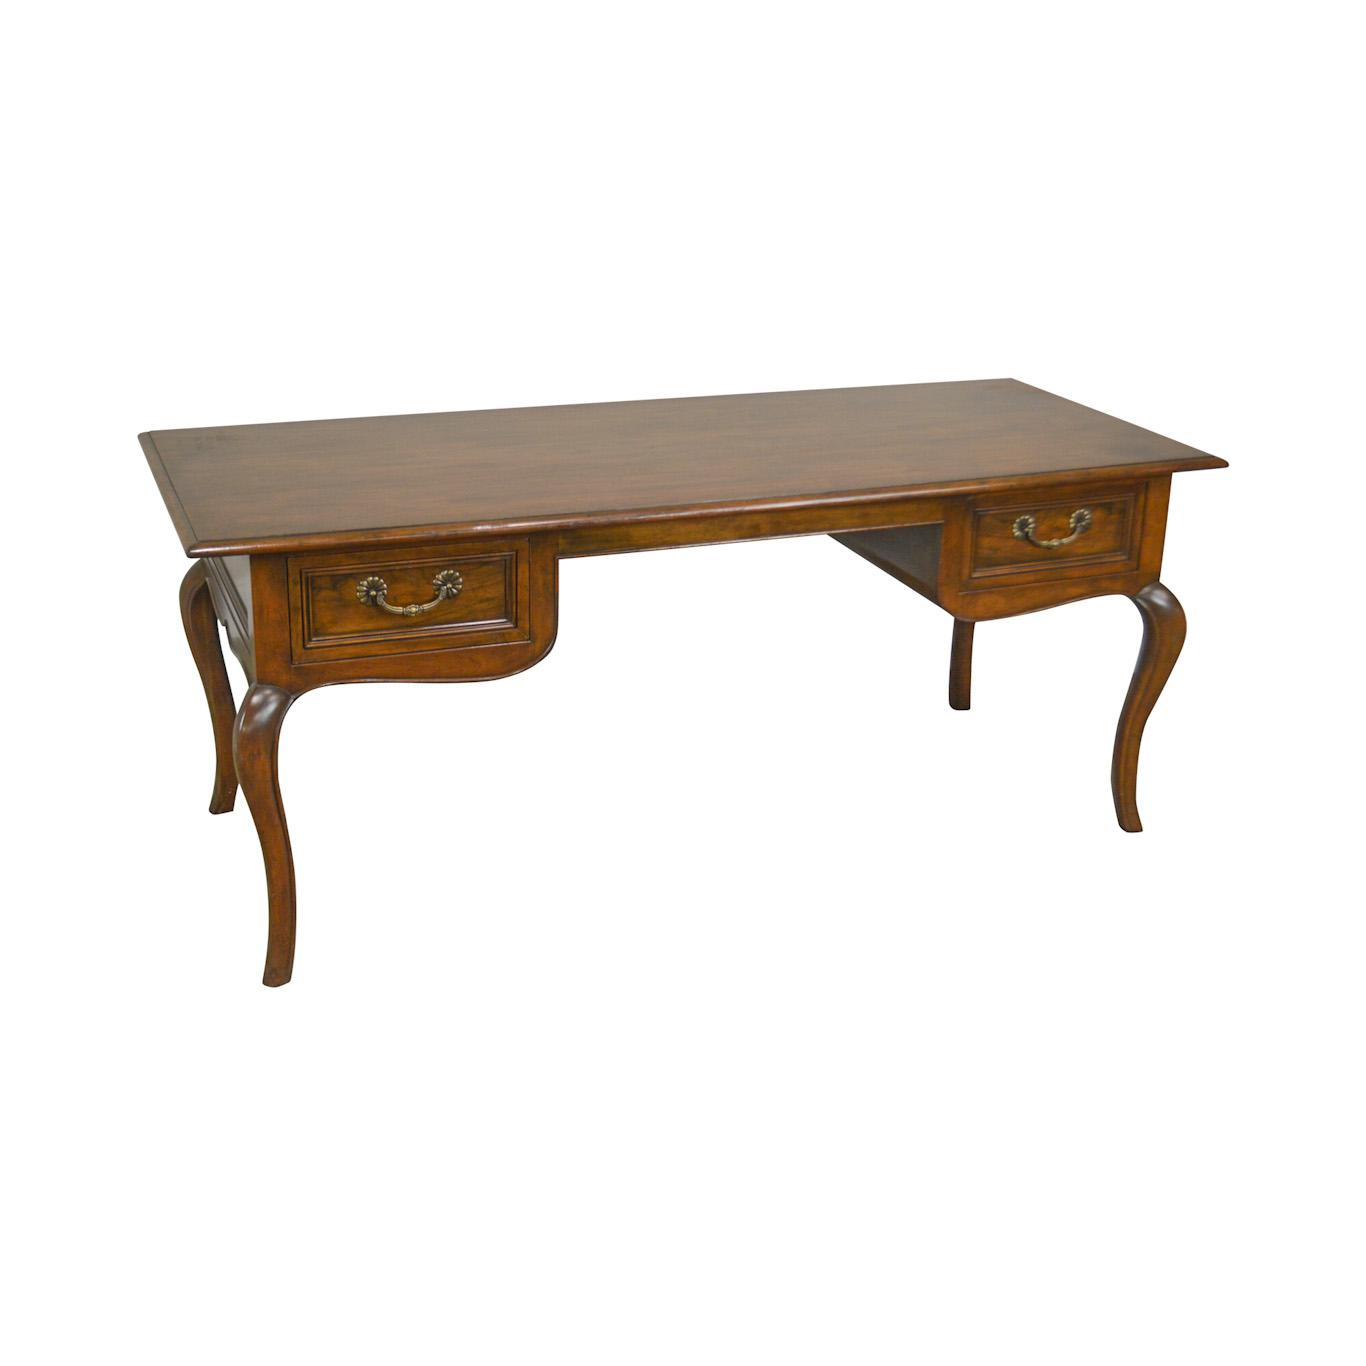 baker french louis xv style vintage walnut bureau plat writing desk for sale image 13